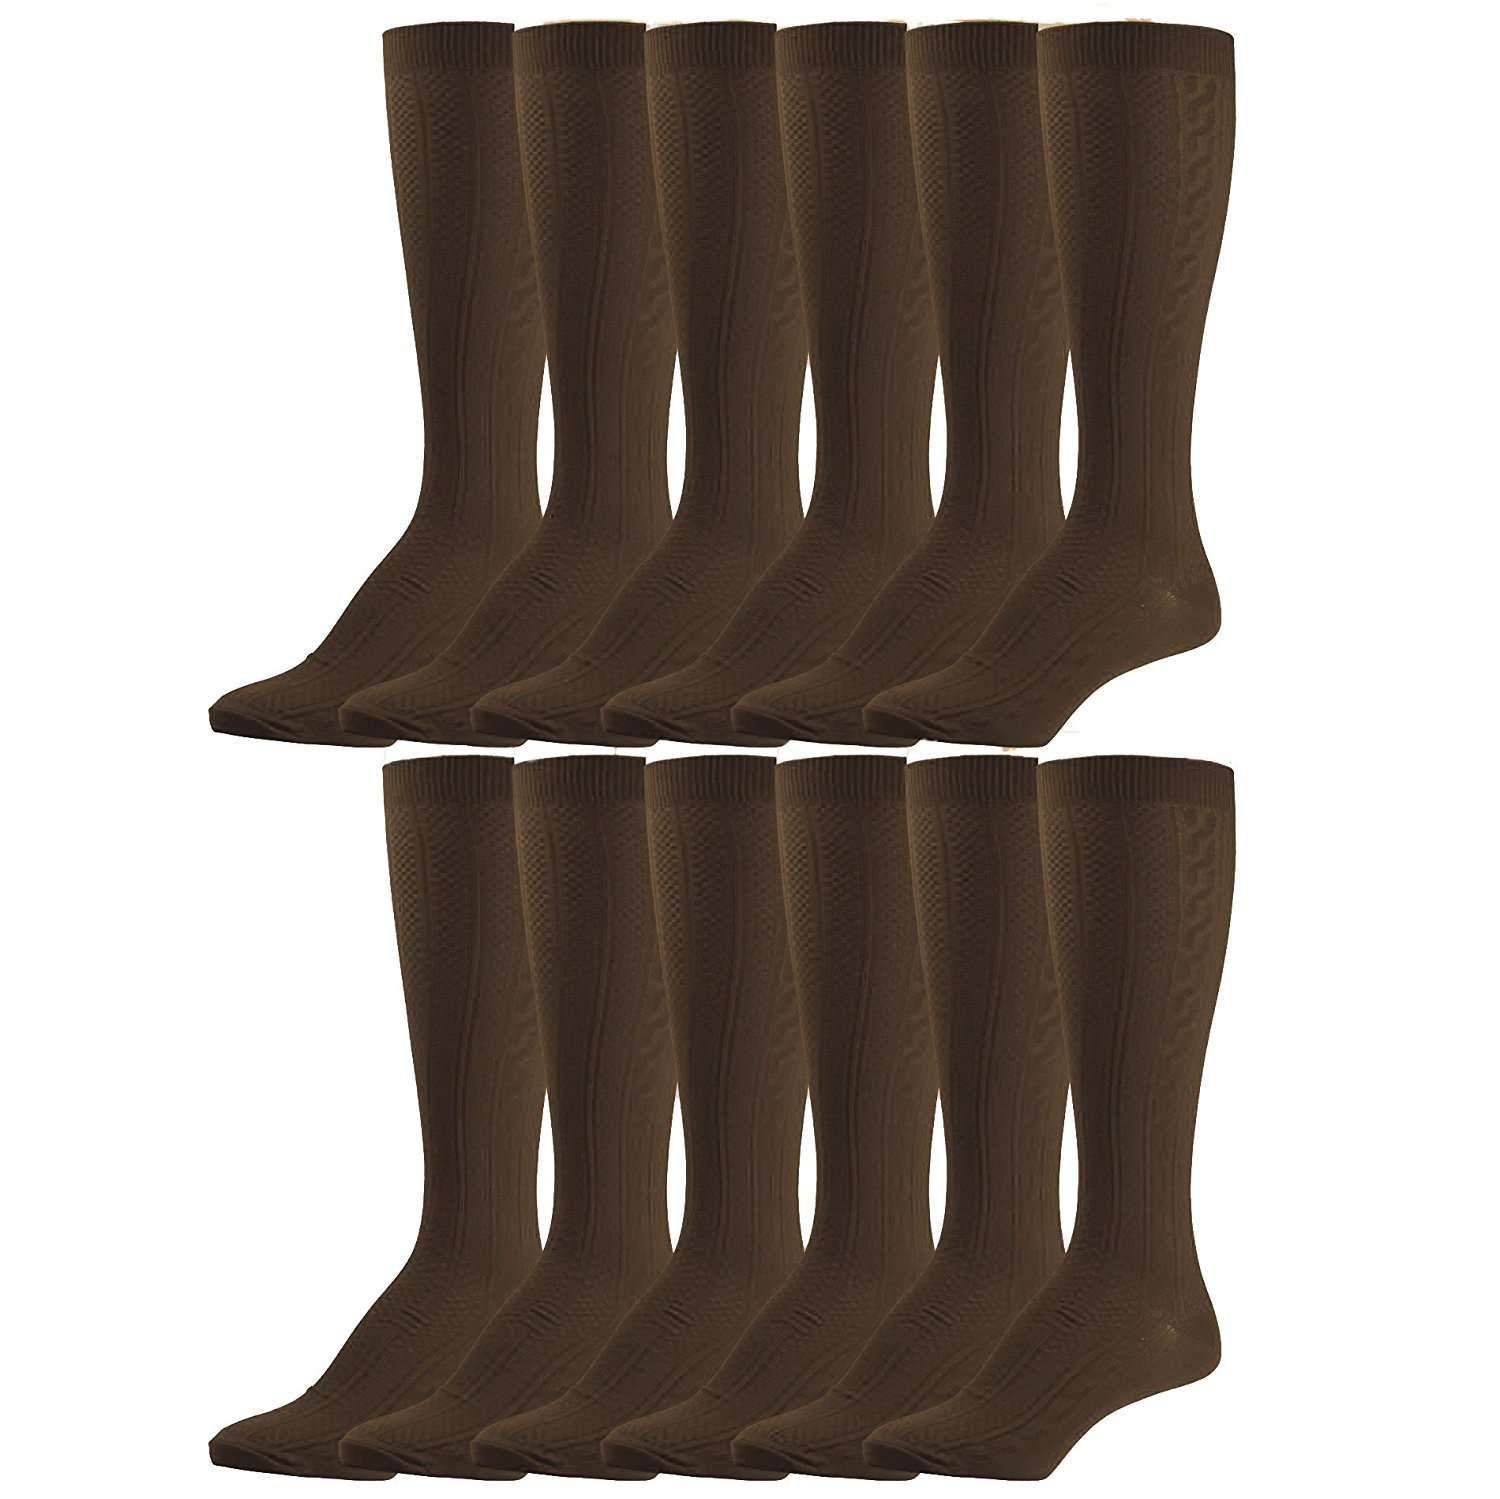 6 pairs of excell Girls Fancy Cable Knit Knee High Socks, Solid Colors, Uniform Socks (6 Pair Coffee, 8-9.5)